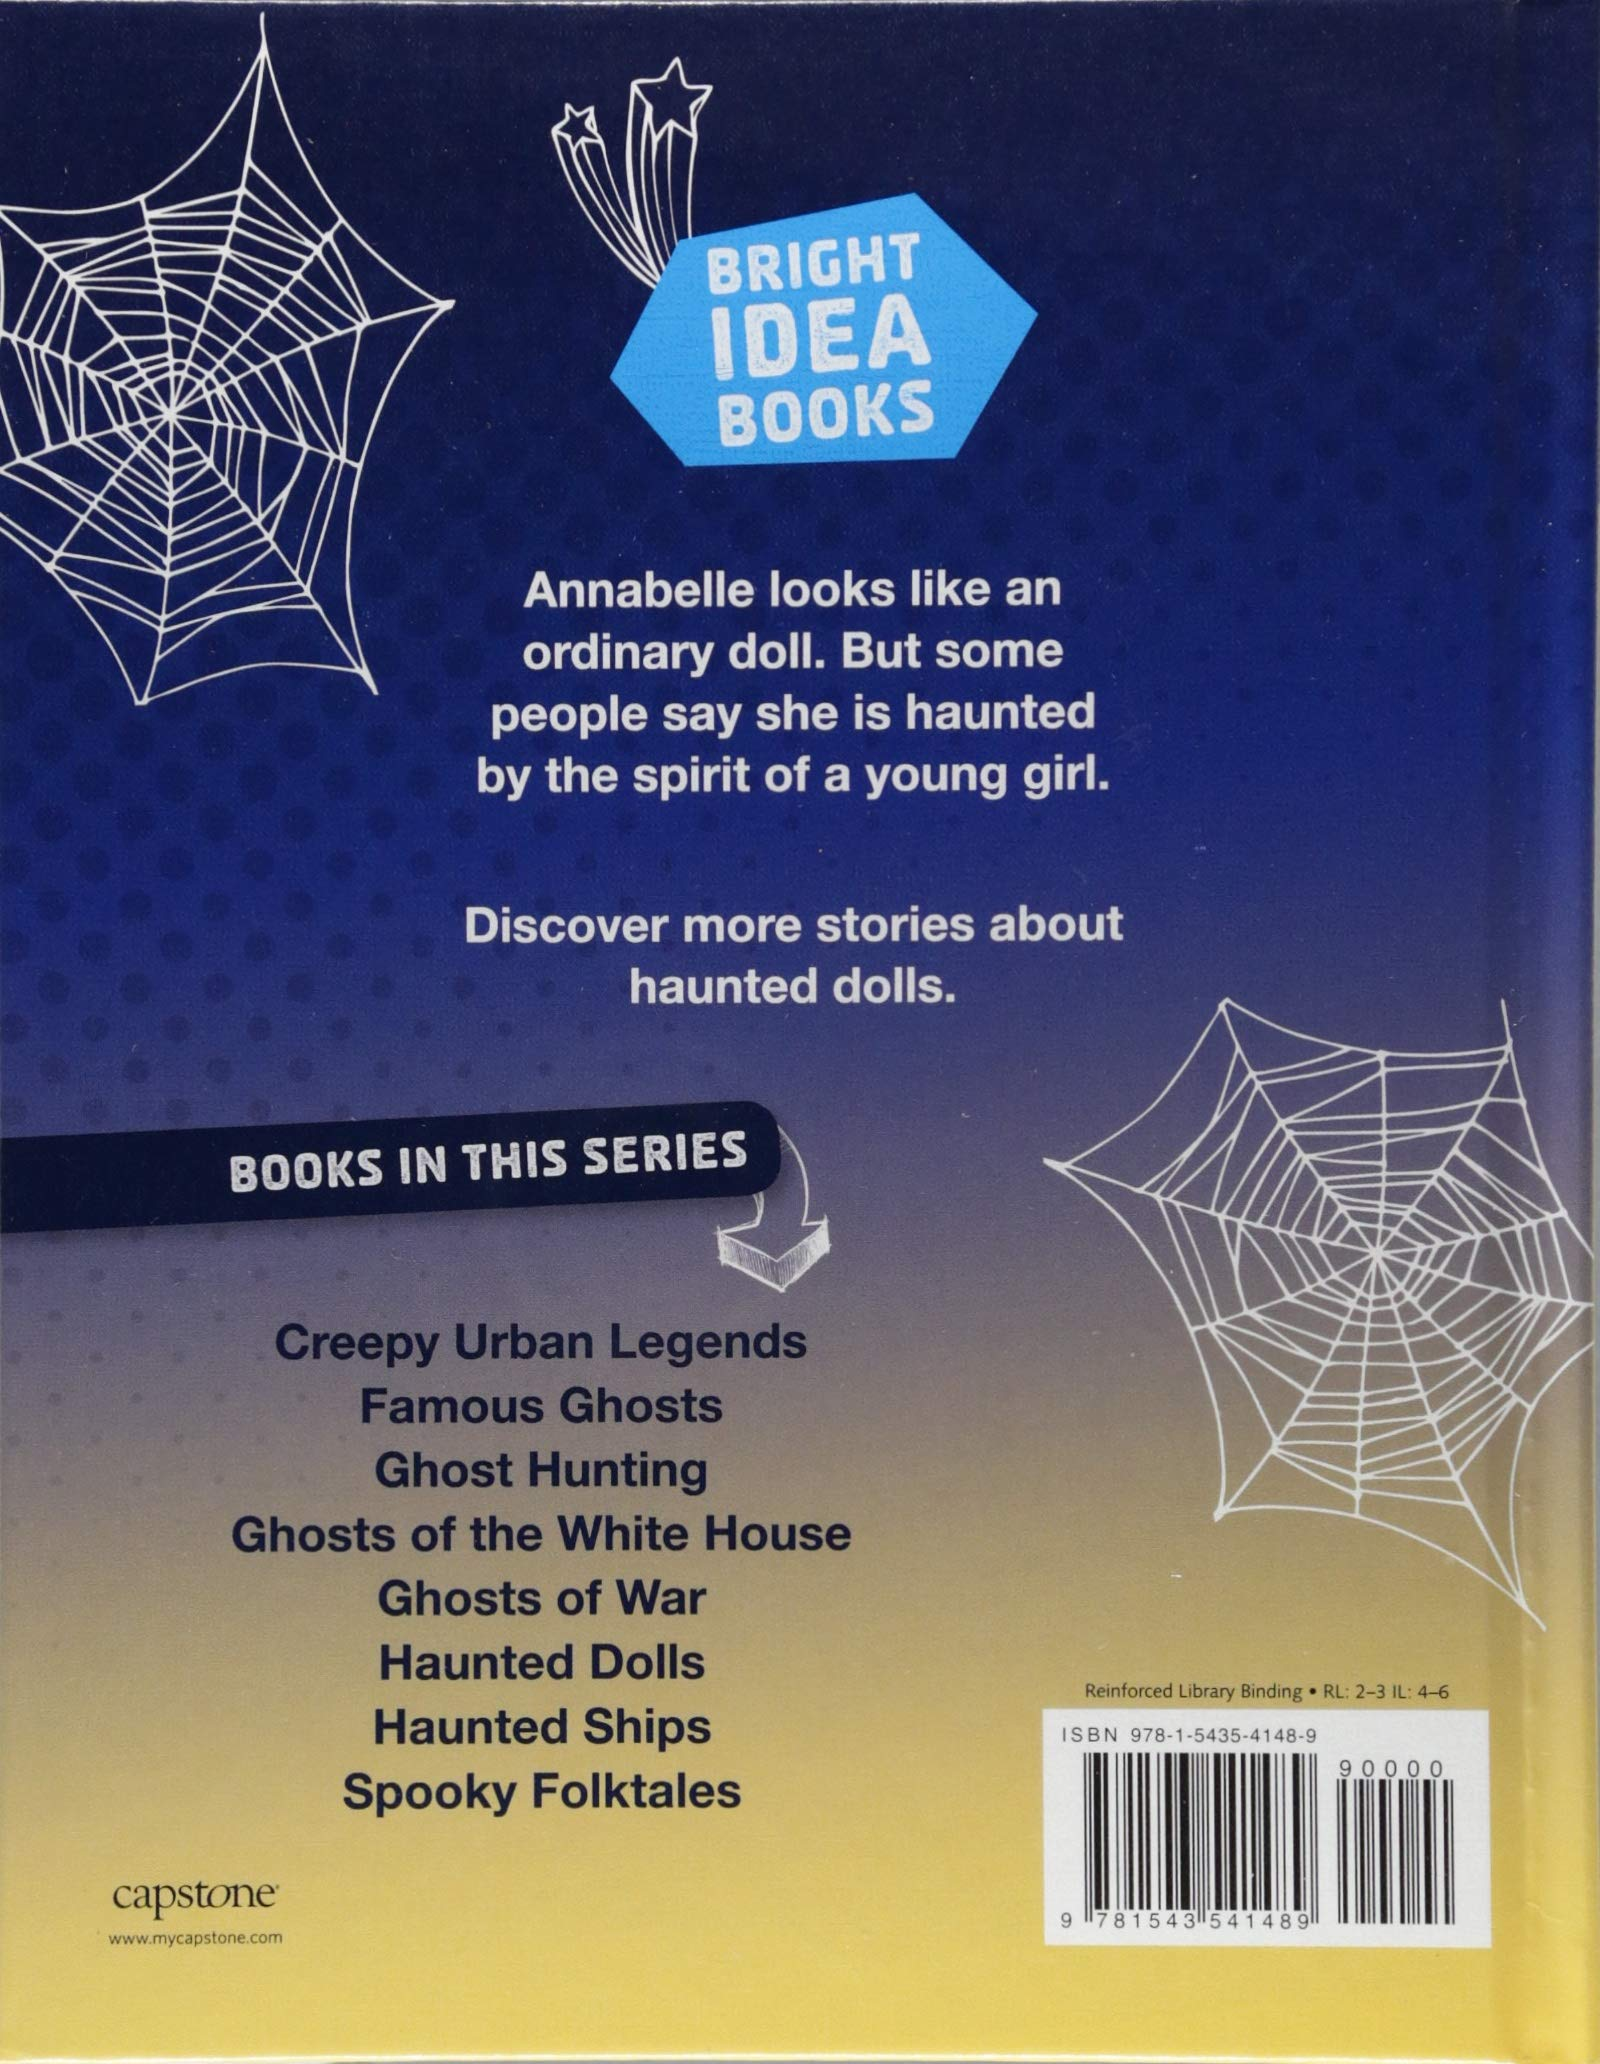 Amazon com: Haunted Dolls (Ghosts and Hauntings) (9781543541489